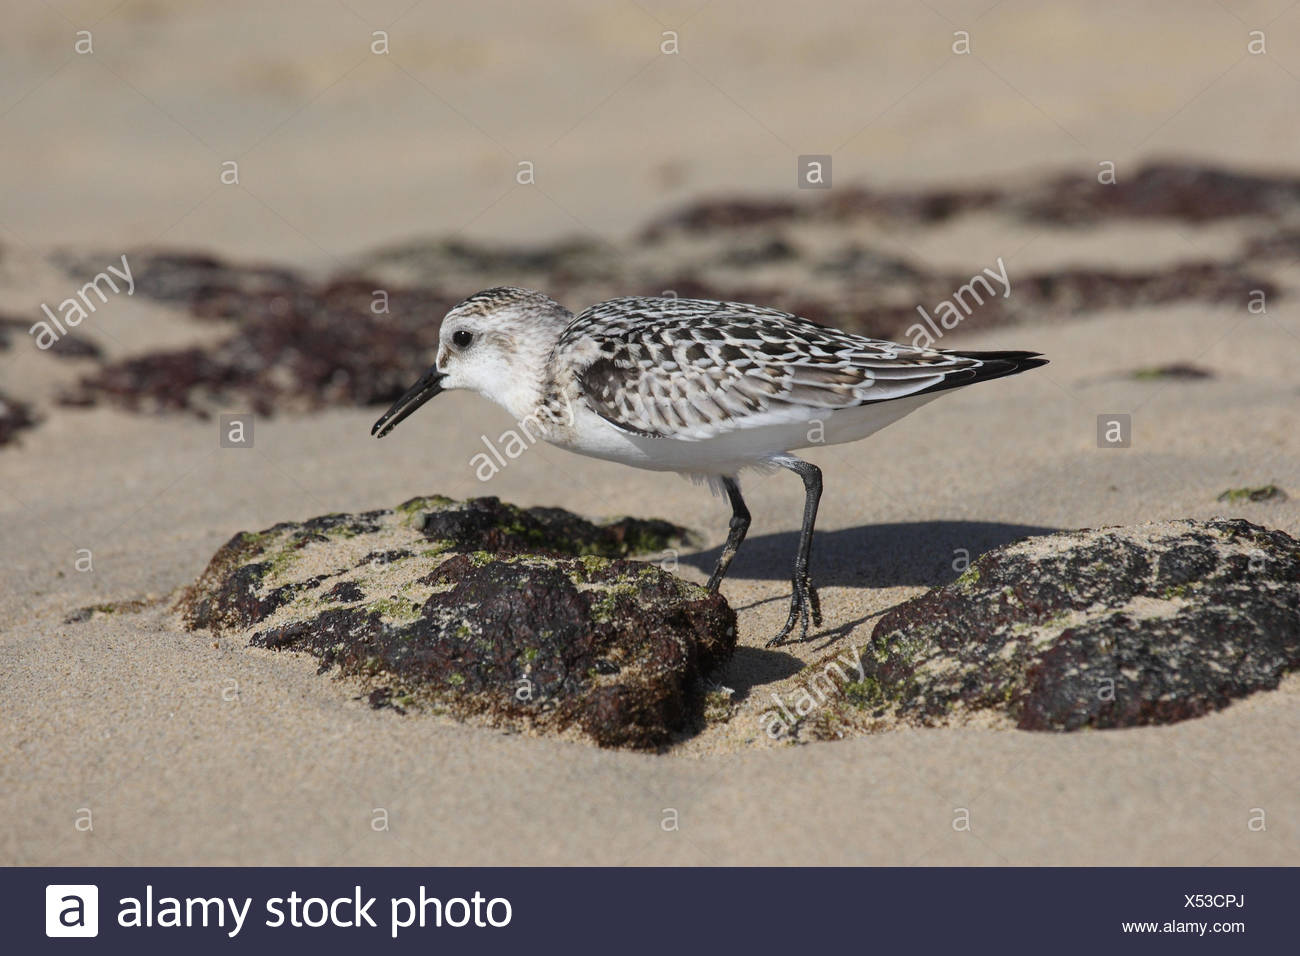 Sanderling, Crocethia alb, beach, - Stock Image